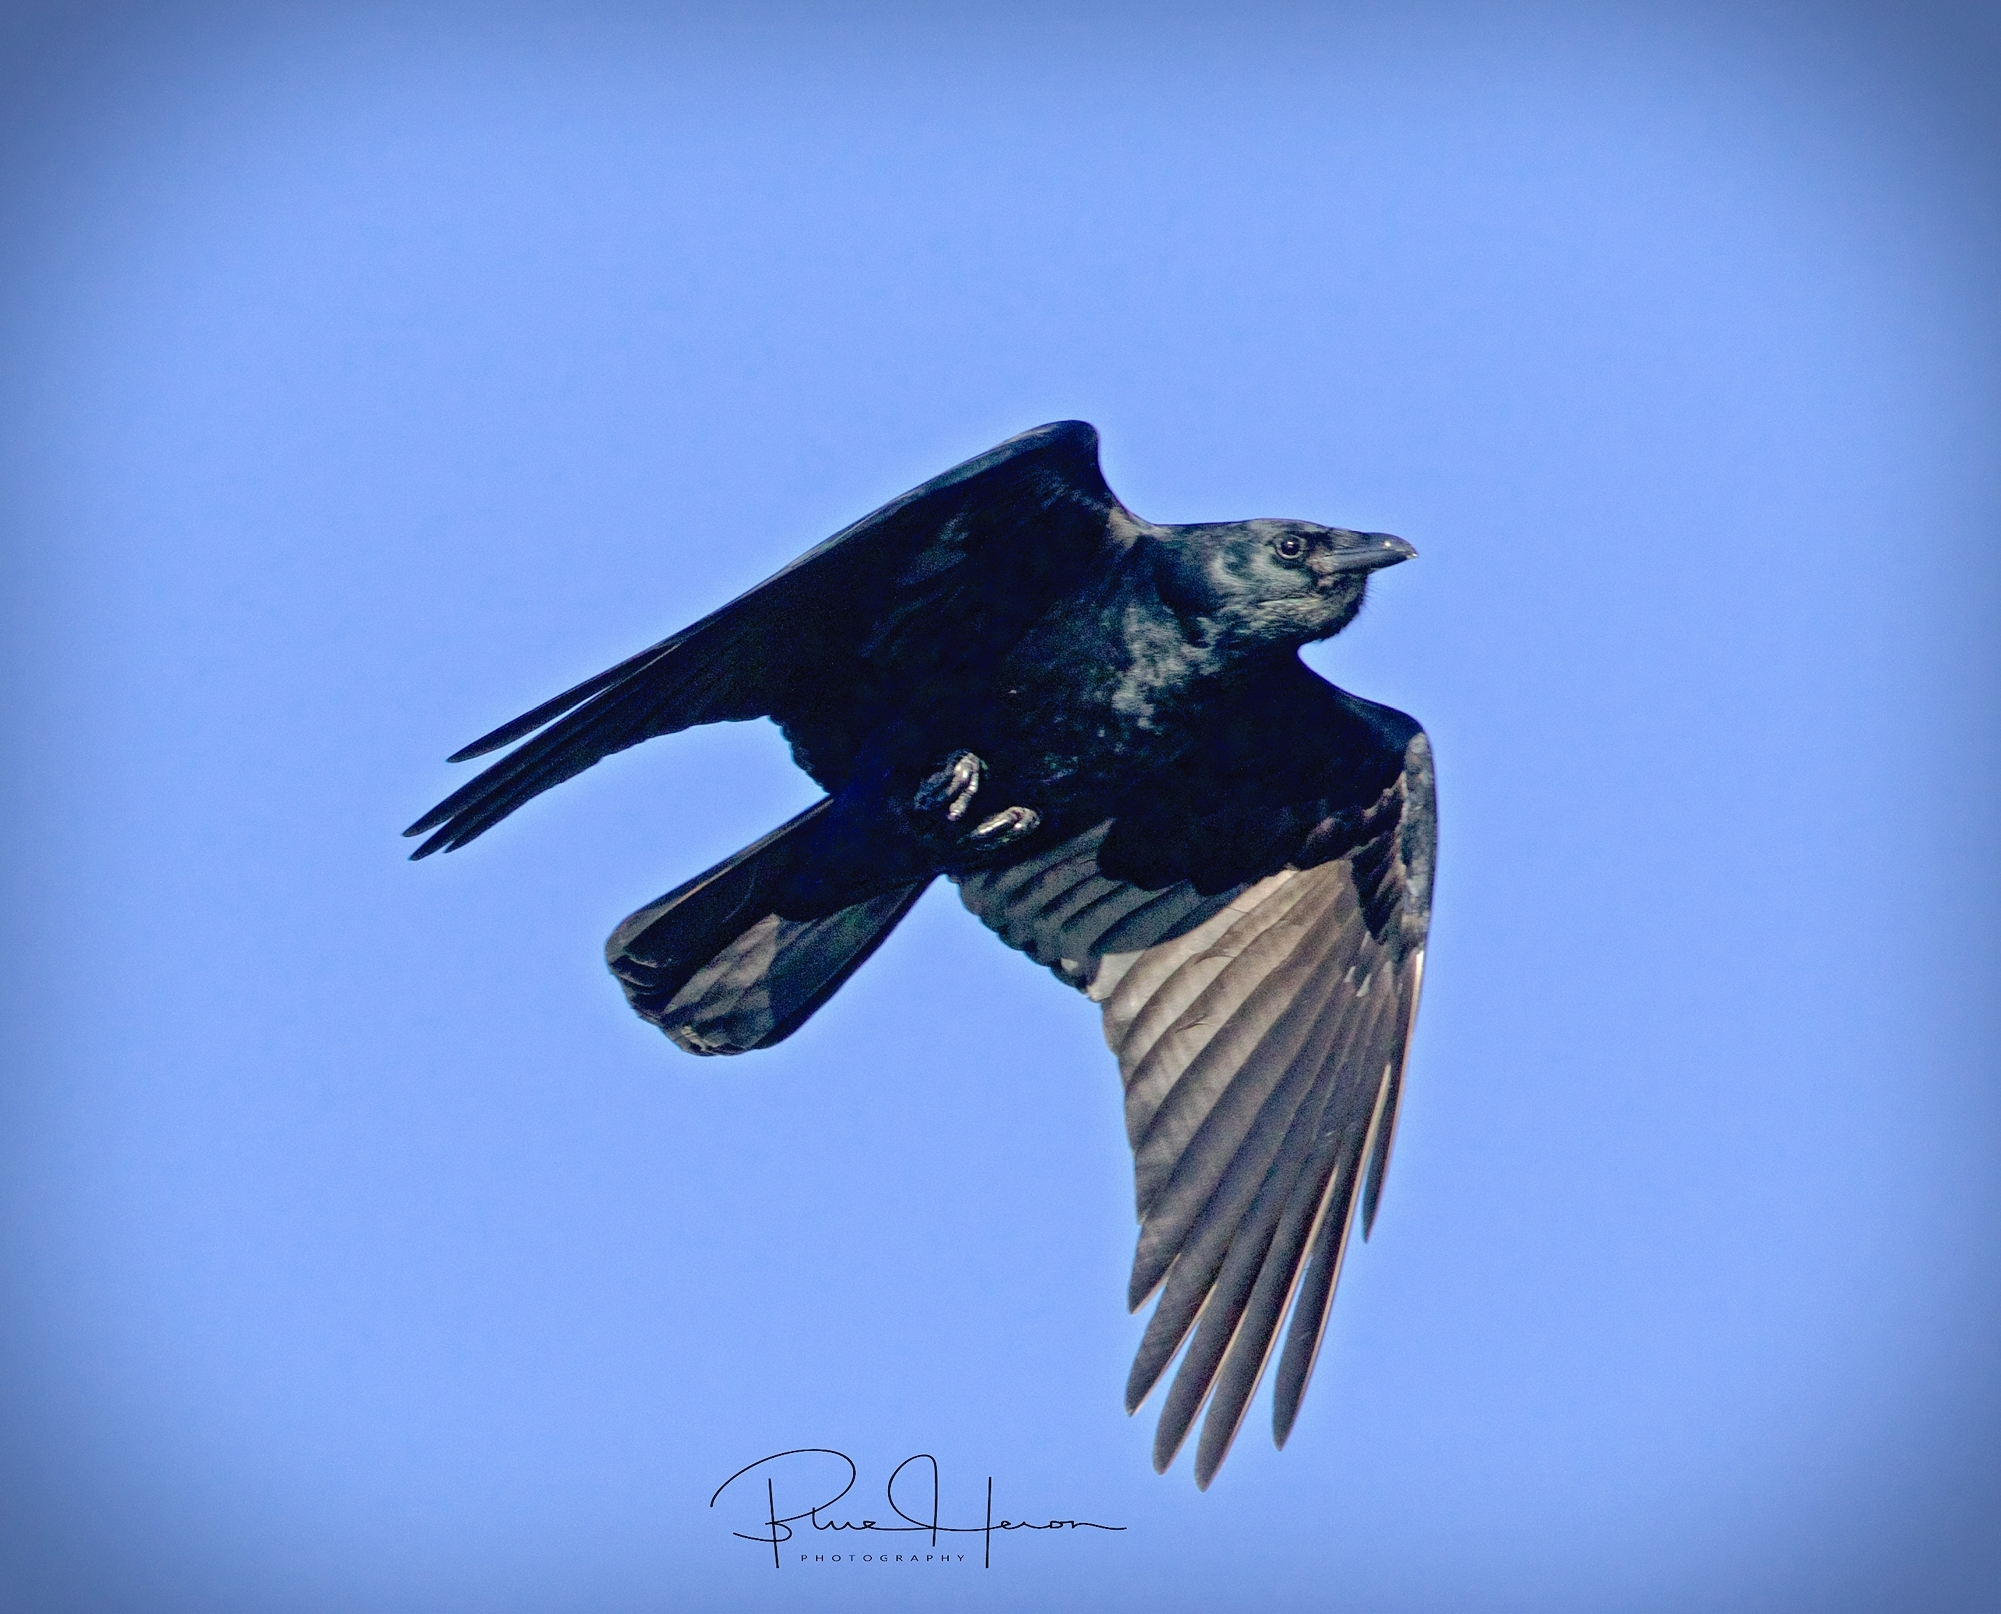 Dark shadows in the sky as a crow sweeps by..